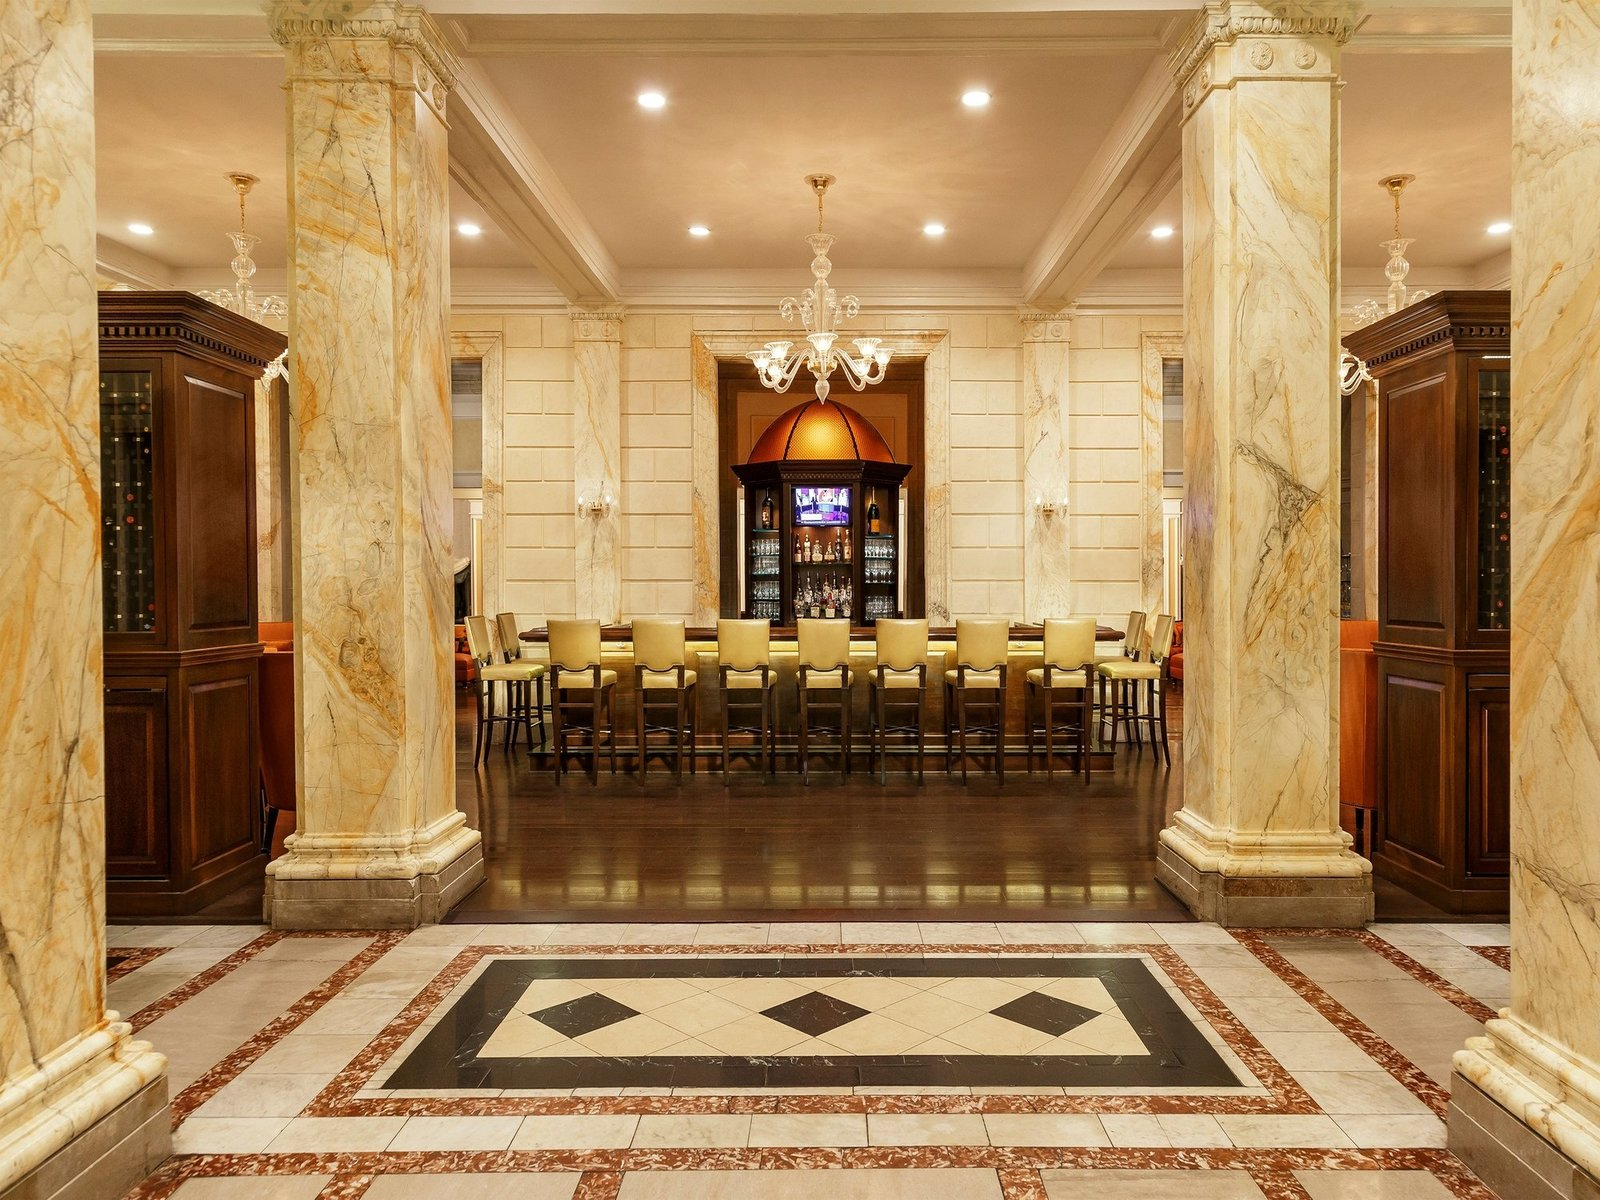 Dining Room, Table, Recessed Lighting, Pendant Lighting, and Stools  Jefferson Hotel